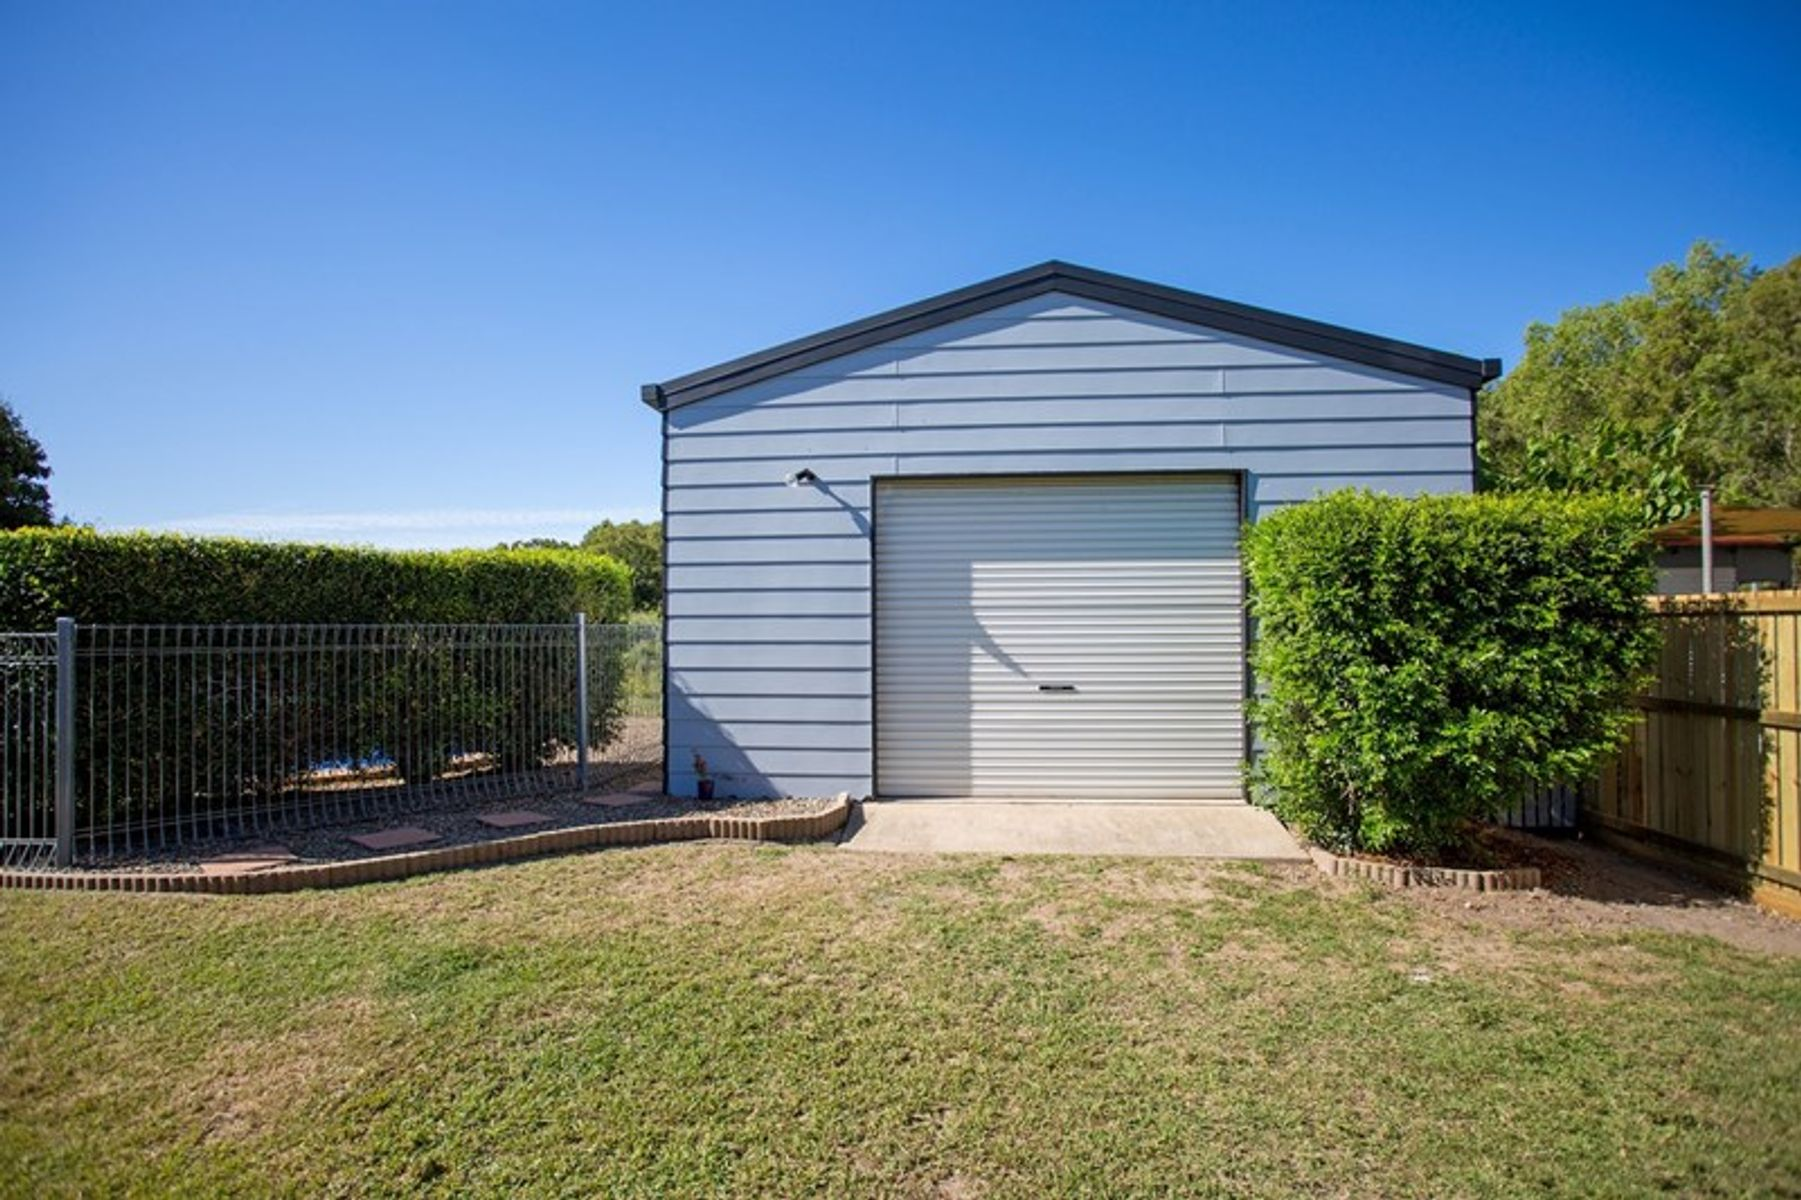 46 Maguire Street, Andergrove, QLD 4740